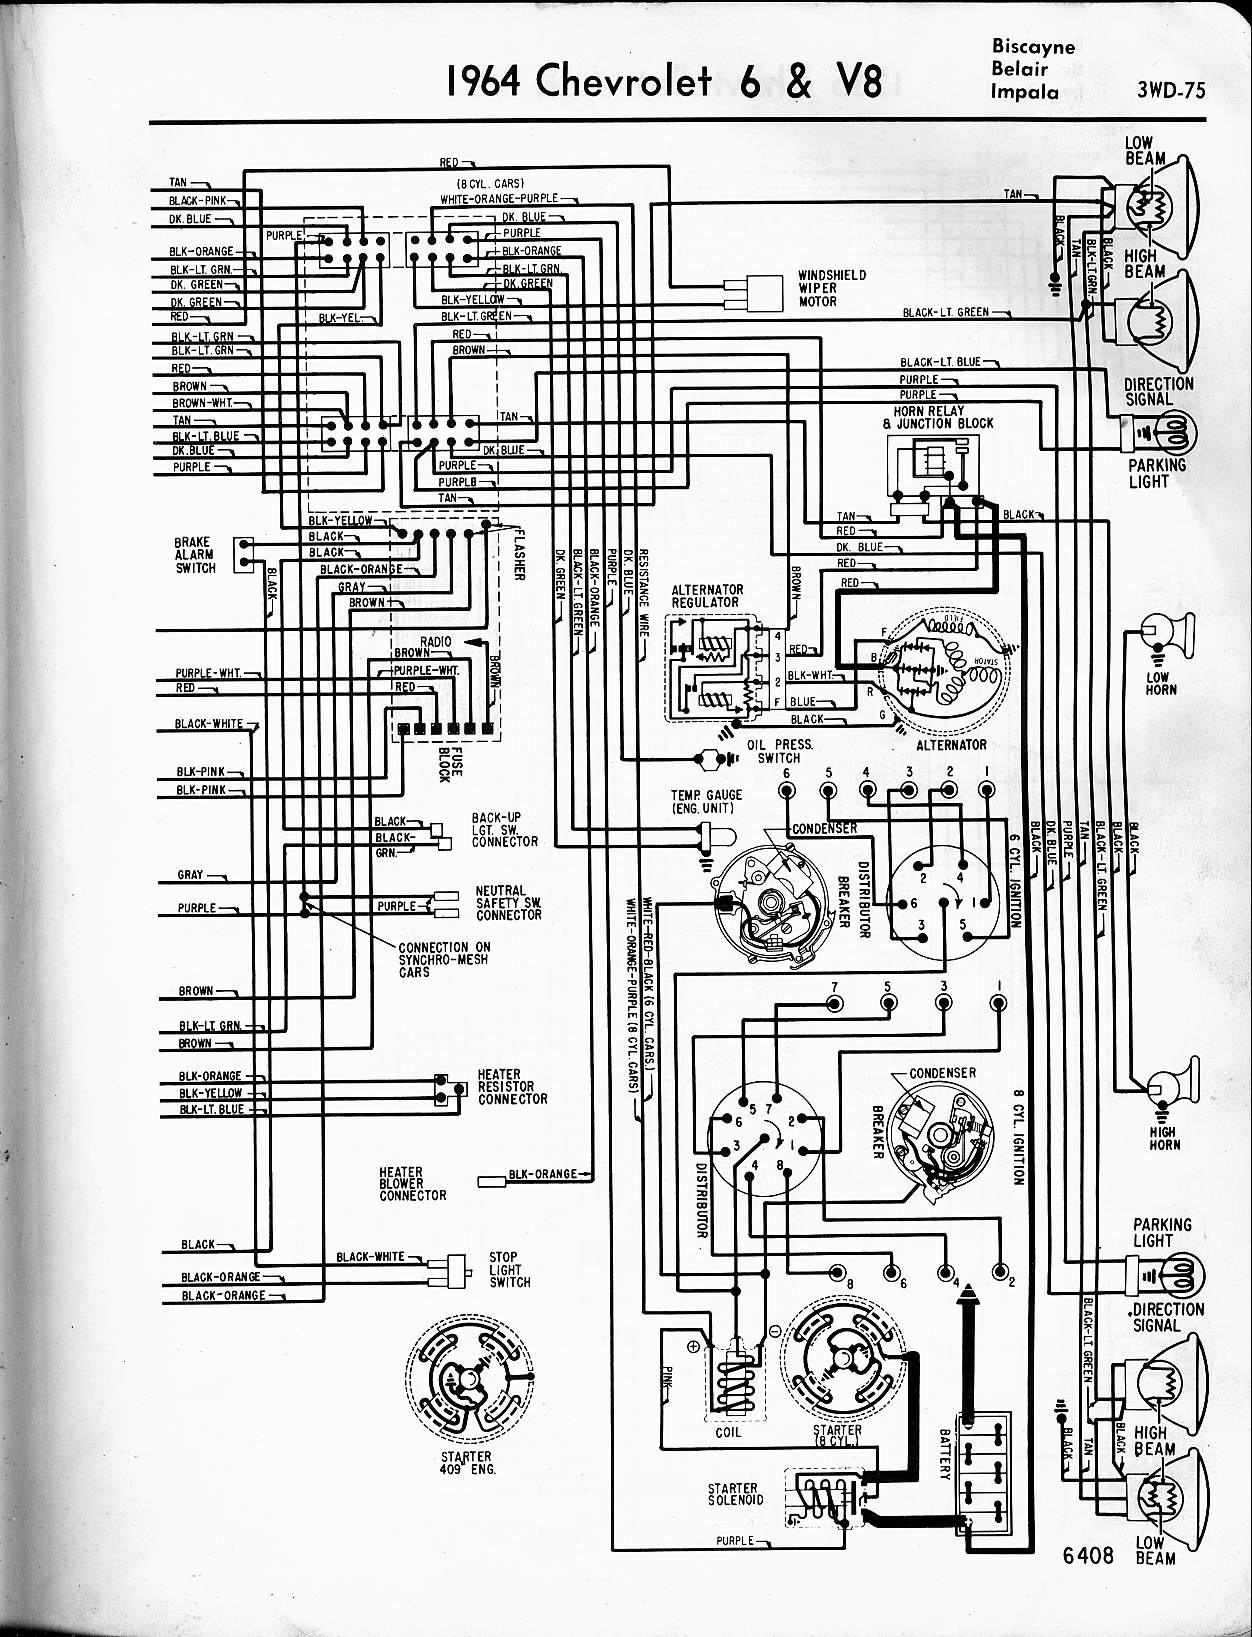 1964 Chevelle Wiring Schematic - Free Wiring Diagram For You • on 64 chevelle engine compartment, 64 chevelle trunk latch, 64 chevelle hood latch, 66 mustang wiring harness, 64 chevelle trunk lid, 64 chevelle ignition wiring, 64 chevelle tail lights, 64 chevelle motor mounts, 69 camaro wiring harness, 67 mustang wiring harness, 64 chevelle hood scoop, 64 chevelle headlights,